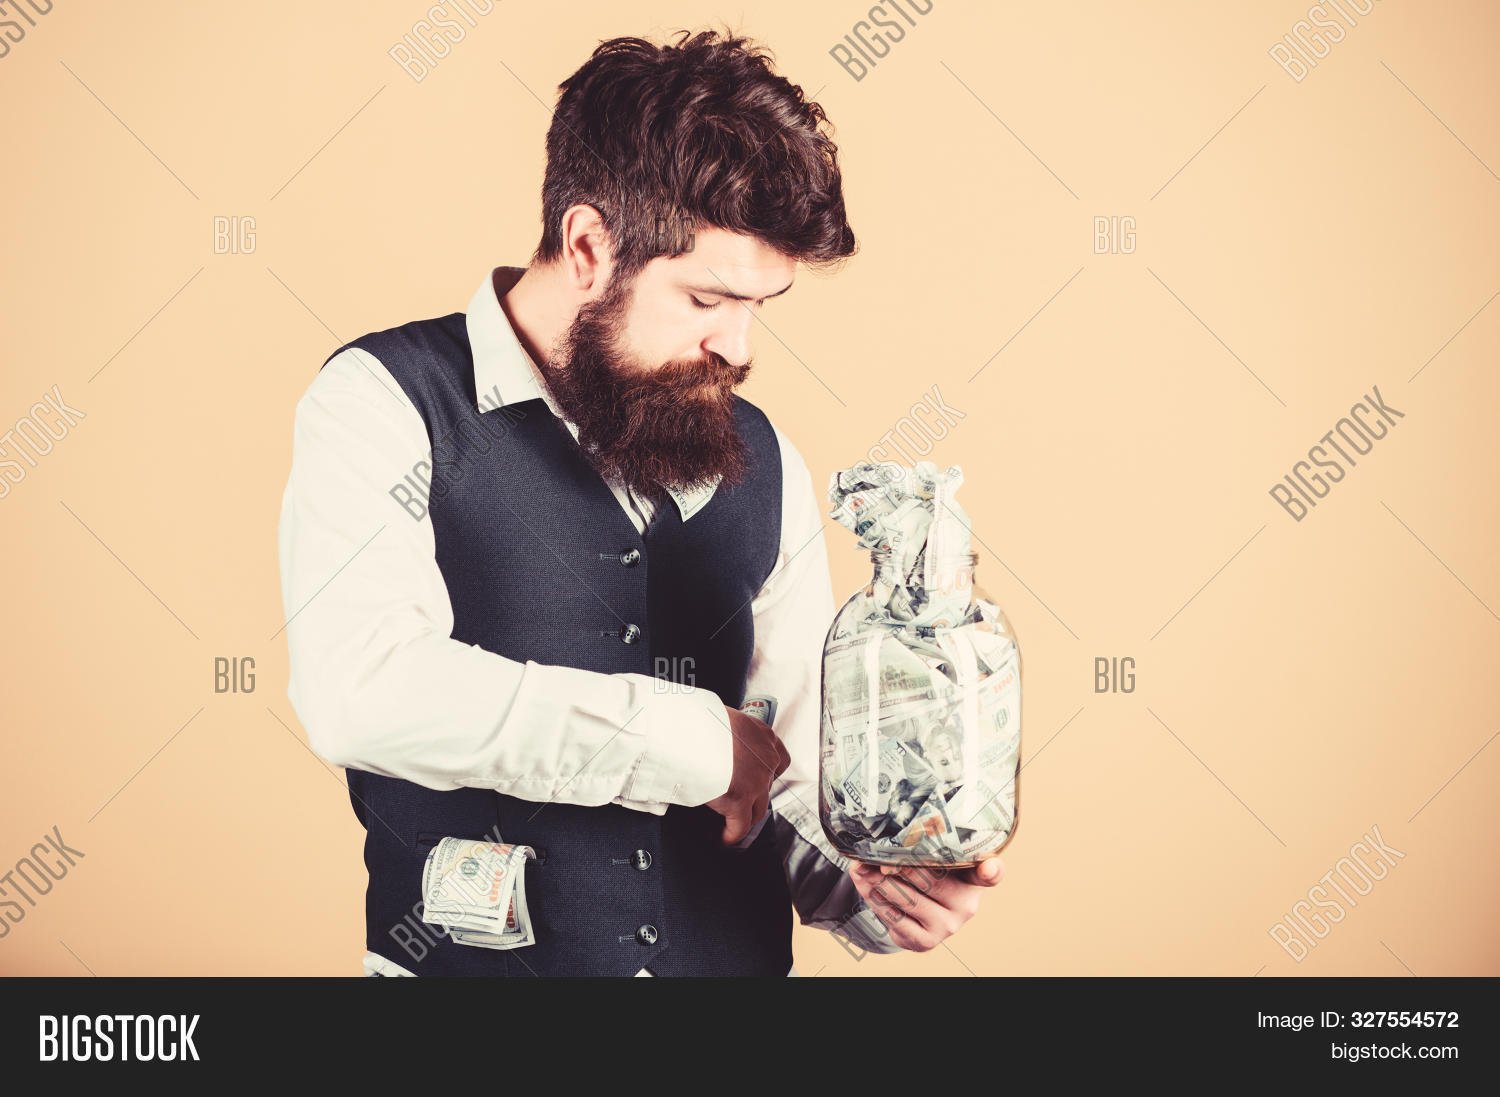 accountant,as,bank,banking,bearded,benefit,budget,business,businessman,cash,concept,currency,dollar,early,economy,entrepreneur,establish,finance,financial,formal,full,fund,guy,his,hold,jar,keep,loan,man,manager,money,possible,profit,retirement,rich,safety,saving,security,start,successful,suit,transaction,tux,work,your